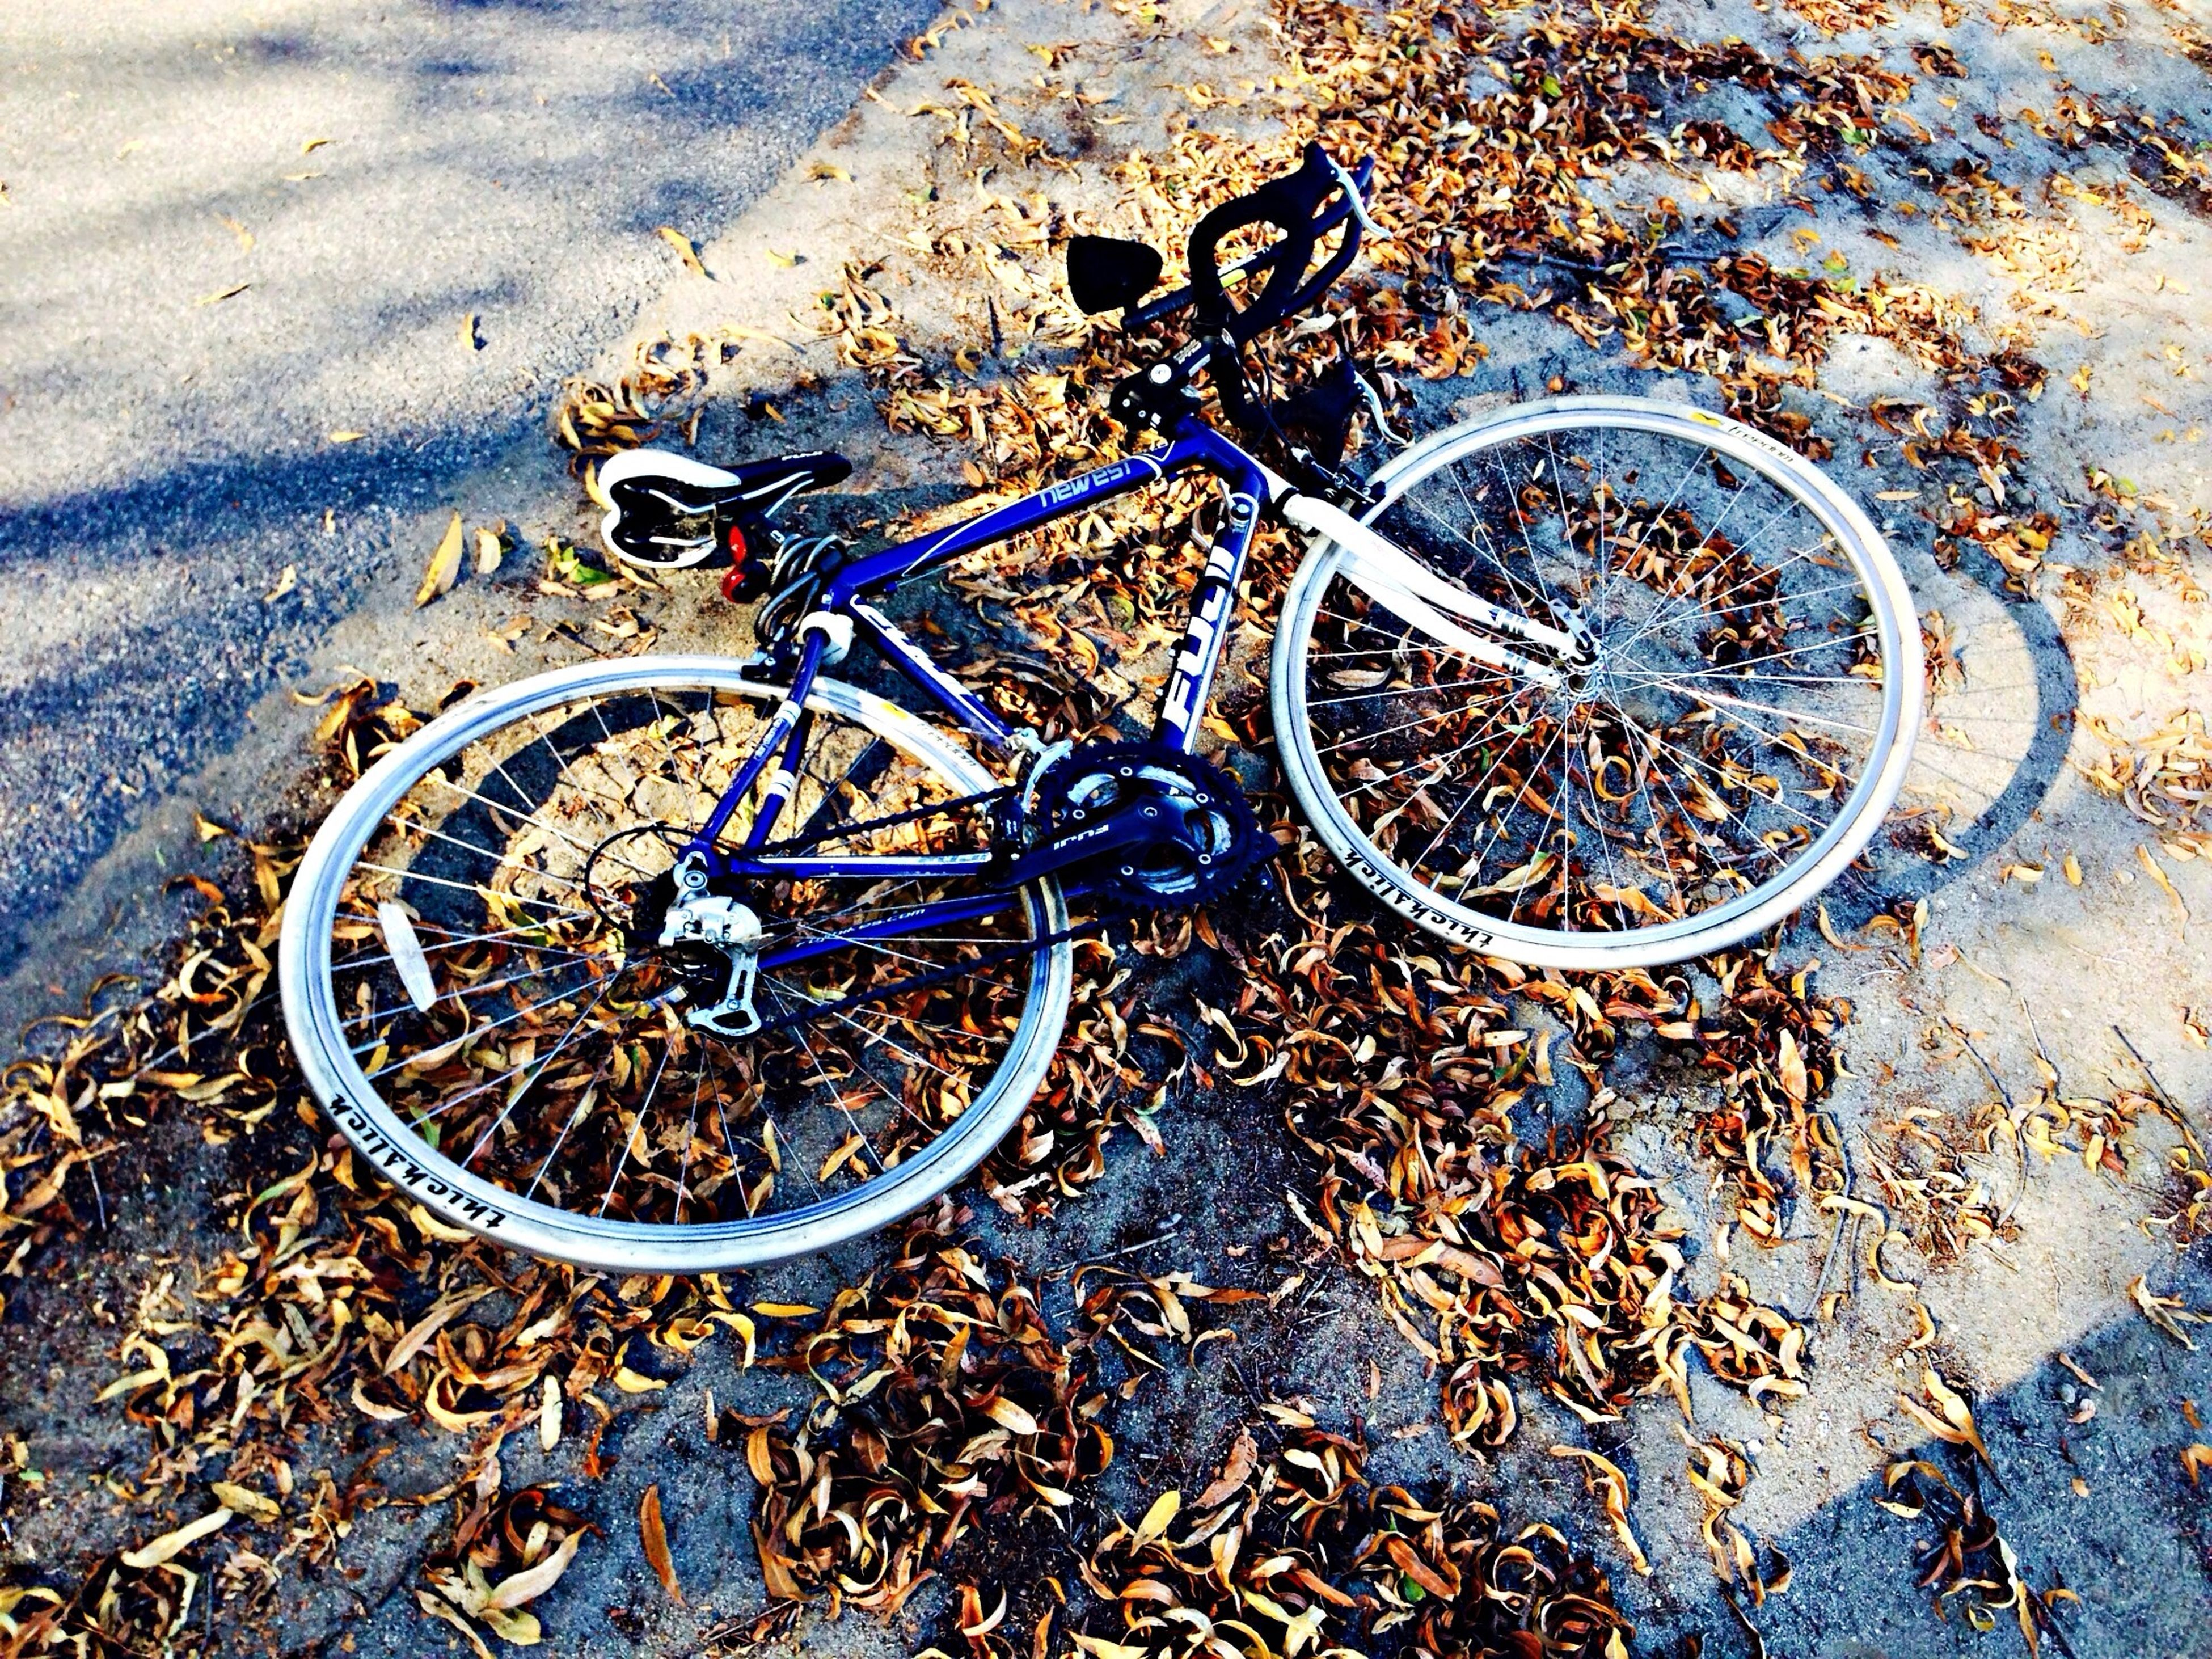 bicycle, transportation, mode of transport, land vehicle, high angle view, stationary, wheel, parked, street, parking, tire, day, outdoors, metal, no people, abandoned, messy, sunlight, close-up, asphalt